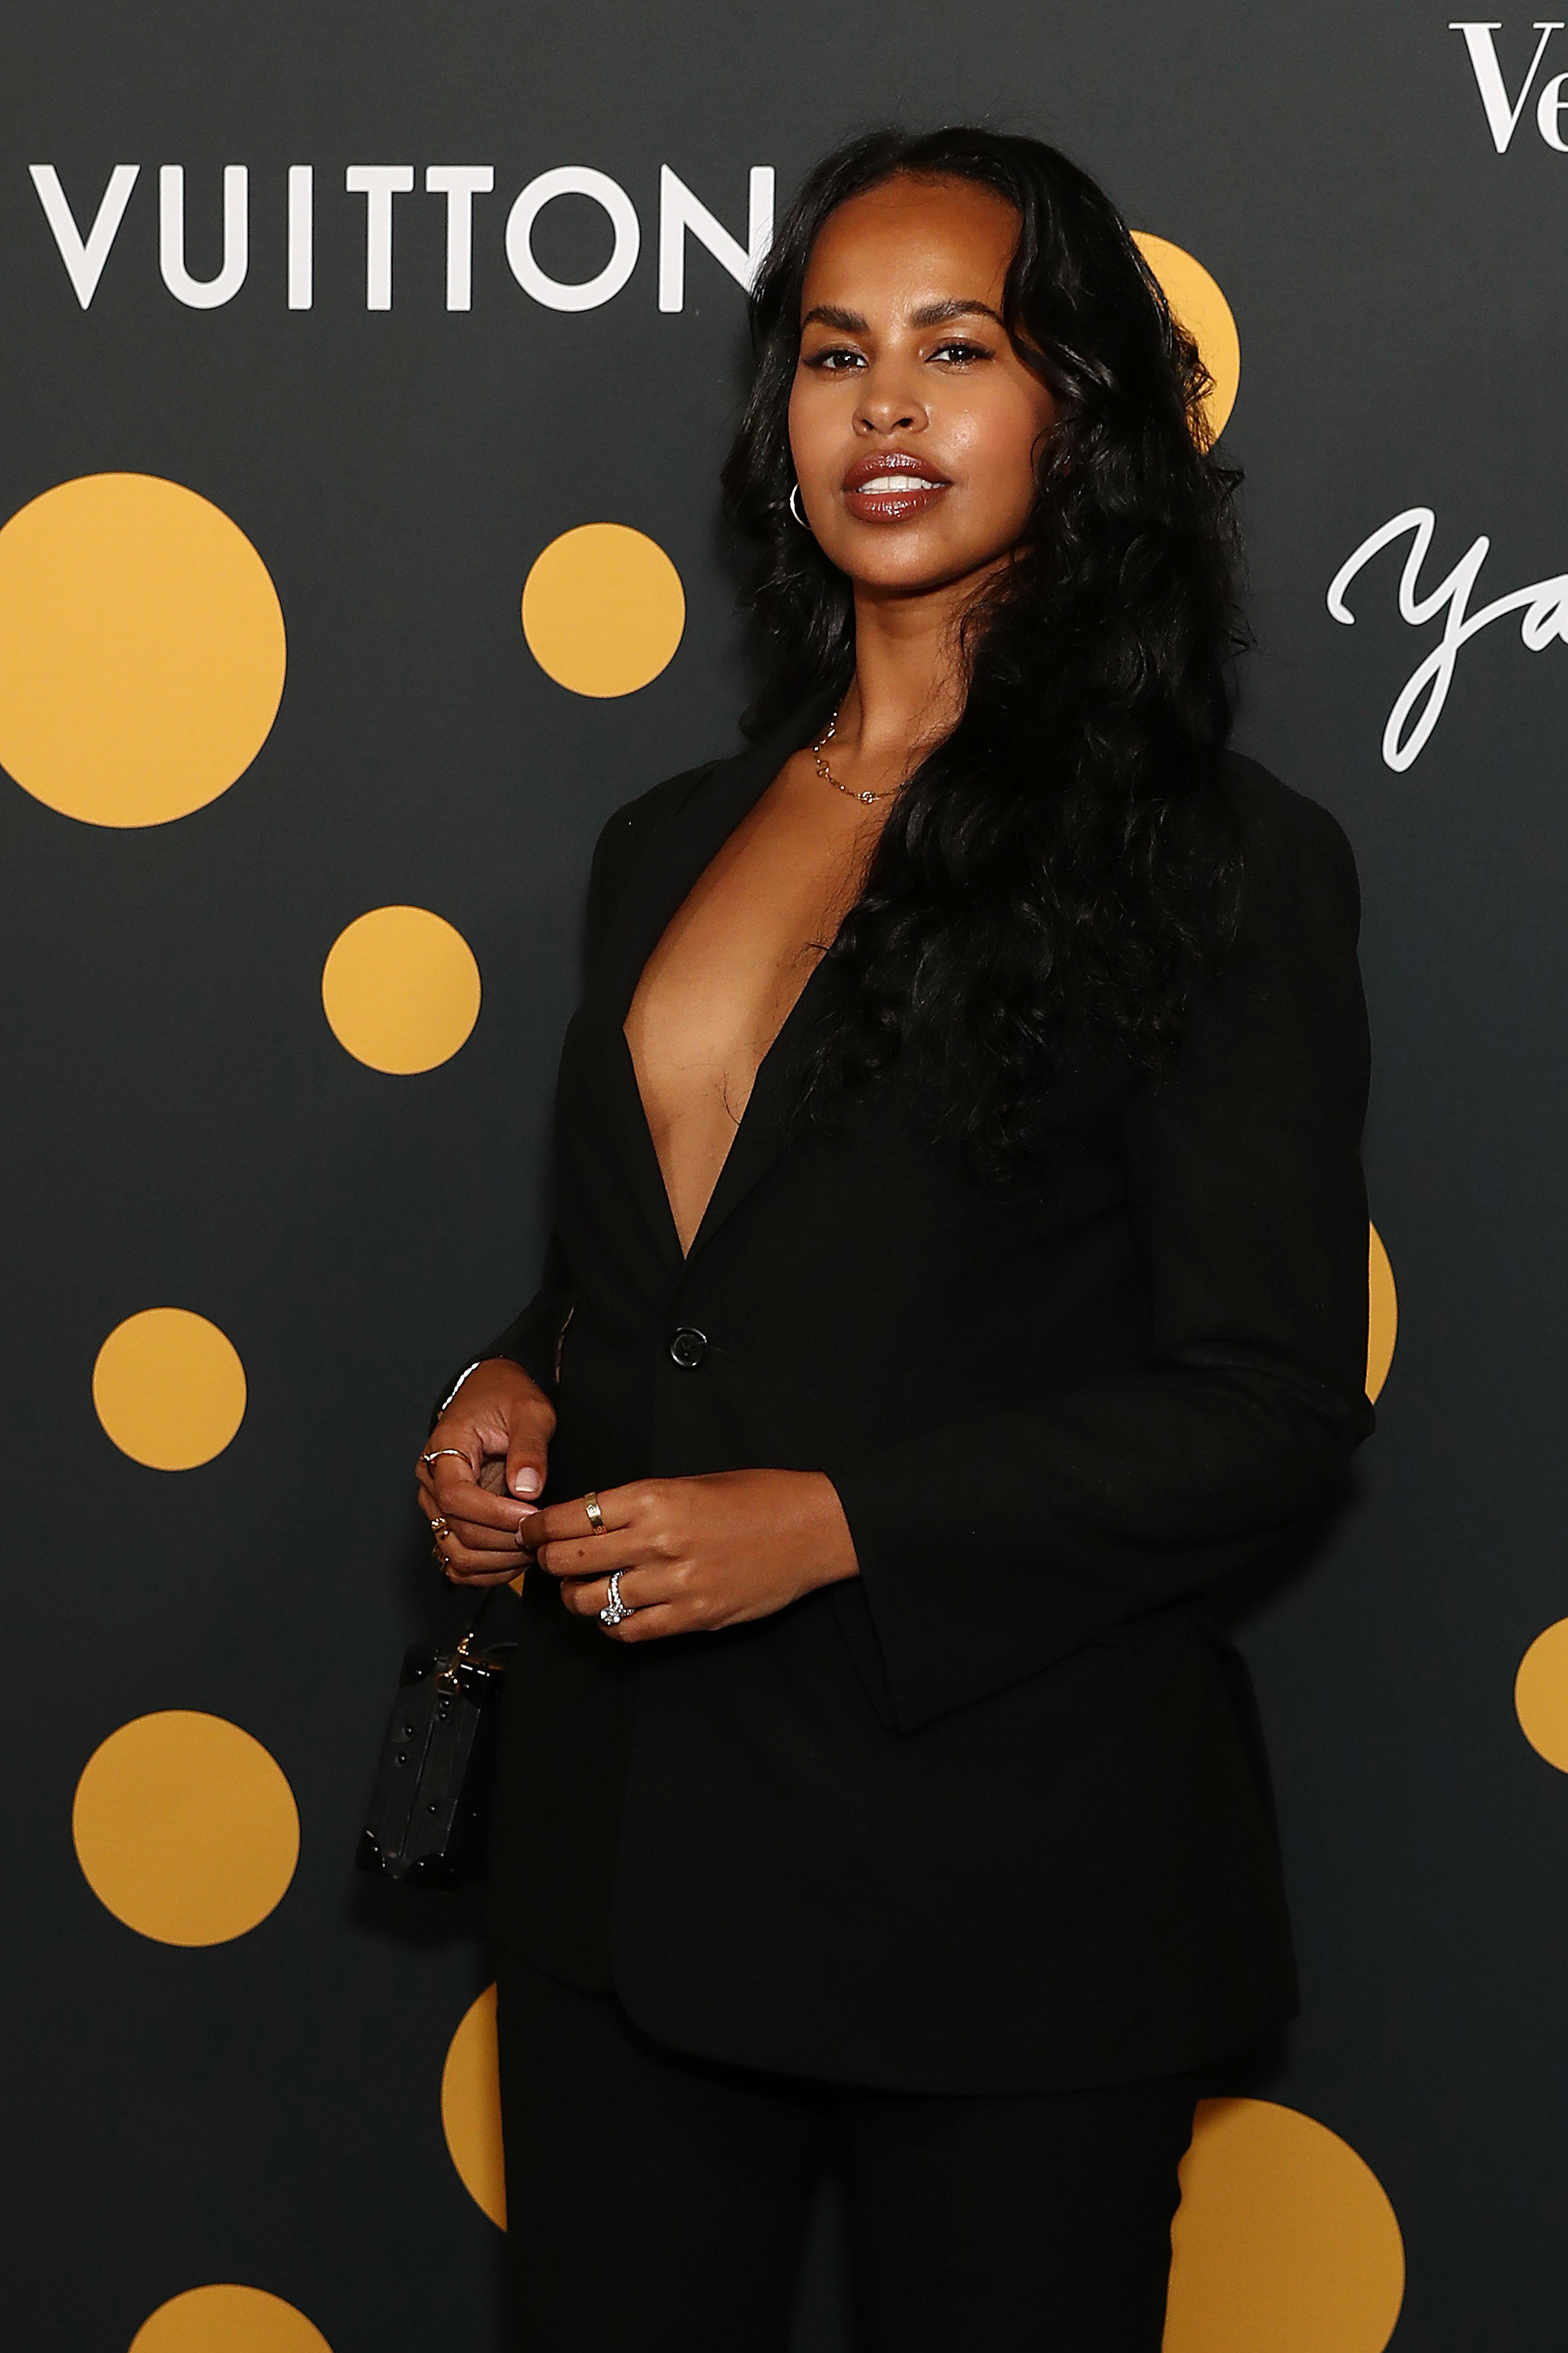 """Sabrina Elba arrives at a cocktail event to celebrate Veuve Clicquot's partnership with artist Yayoi Kusama and new vintage """"La Grande Dame 2012"""" at Louis Vuitton in Sydney,"""